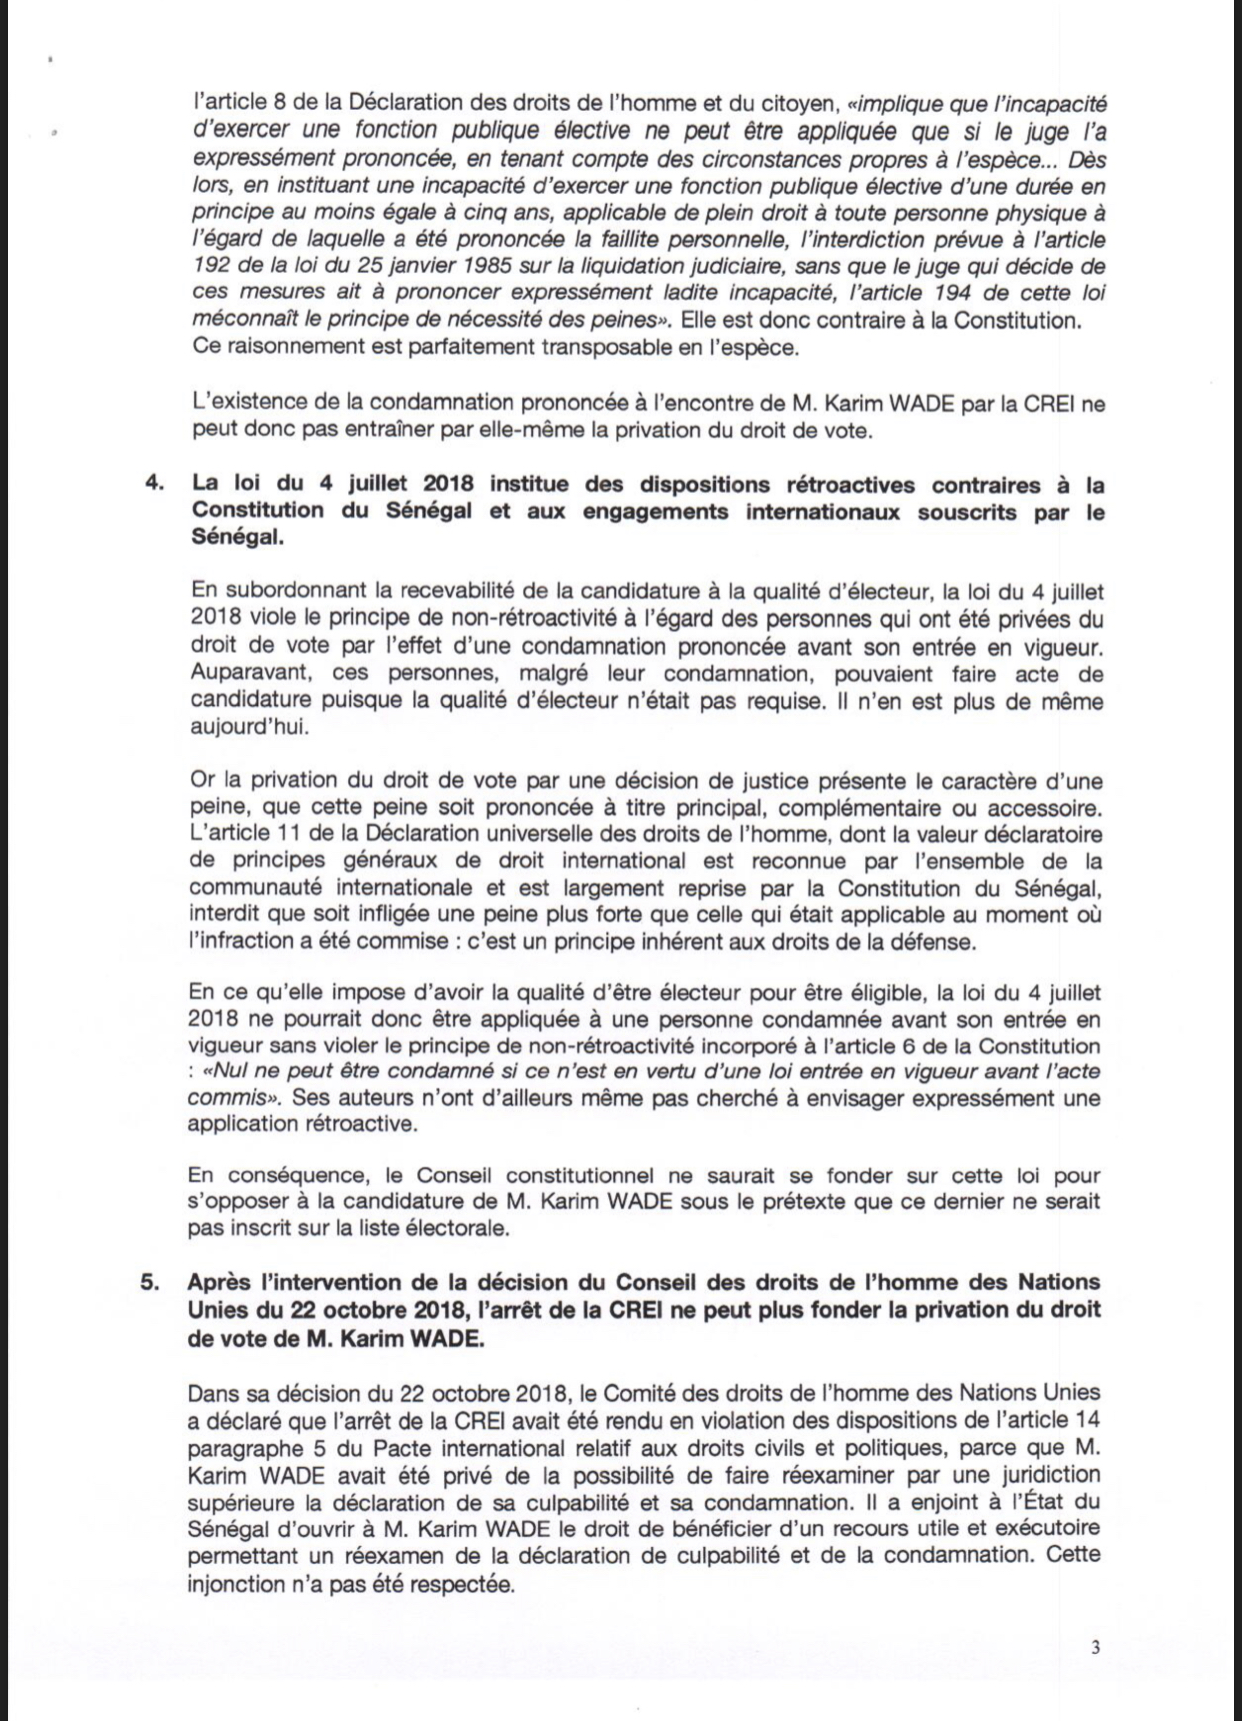 Candidature de Karim Wade: D'éminents juristes nationaux et internationaux écrivent au Conseil constitutionnel (Document)